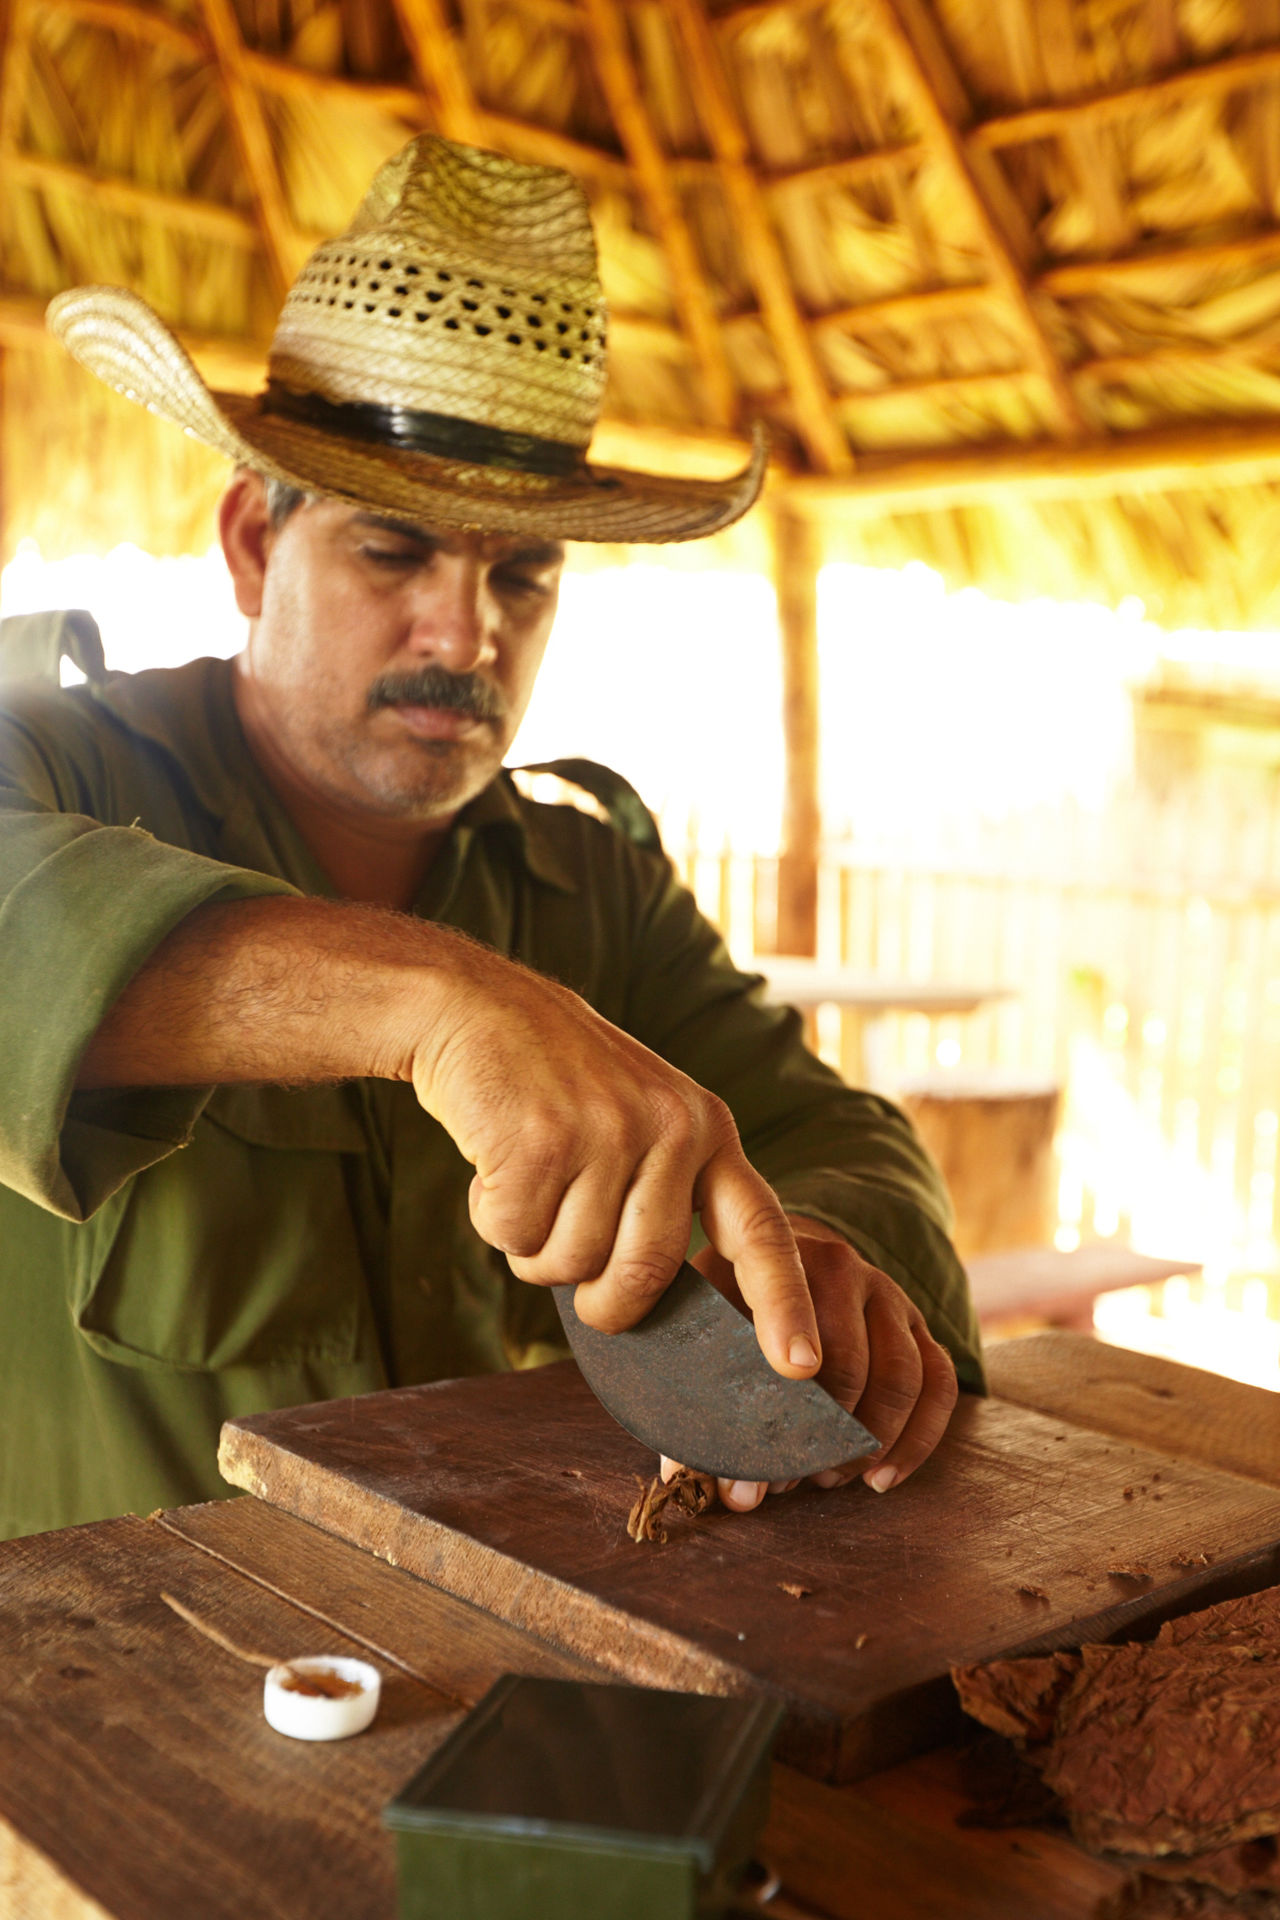 Adult Countryside Cuban Cigar Cuban Life Day Indoors  Mid Adult Occupation One Man Only One Person People Real People Skill  Tobacco Leaf Wood - Material Workshop Young Adult